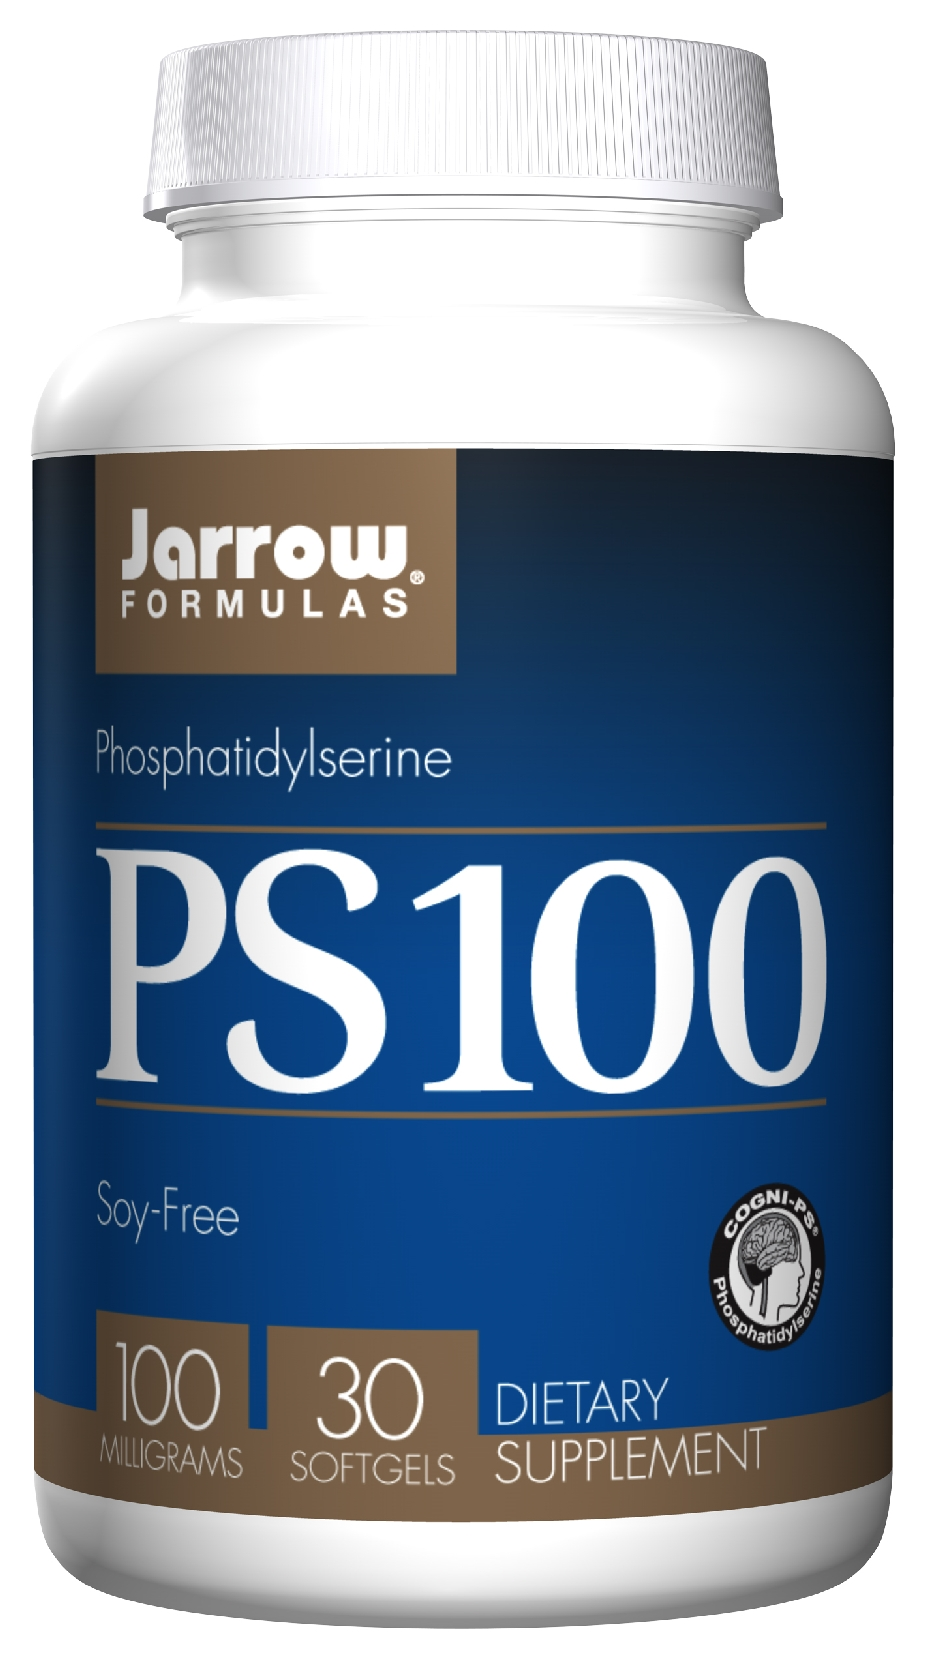 PS 100 Phosphatidylserine 100 mg 30 sgels by Jarrow Formulas